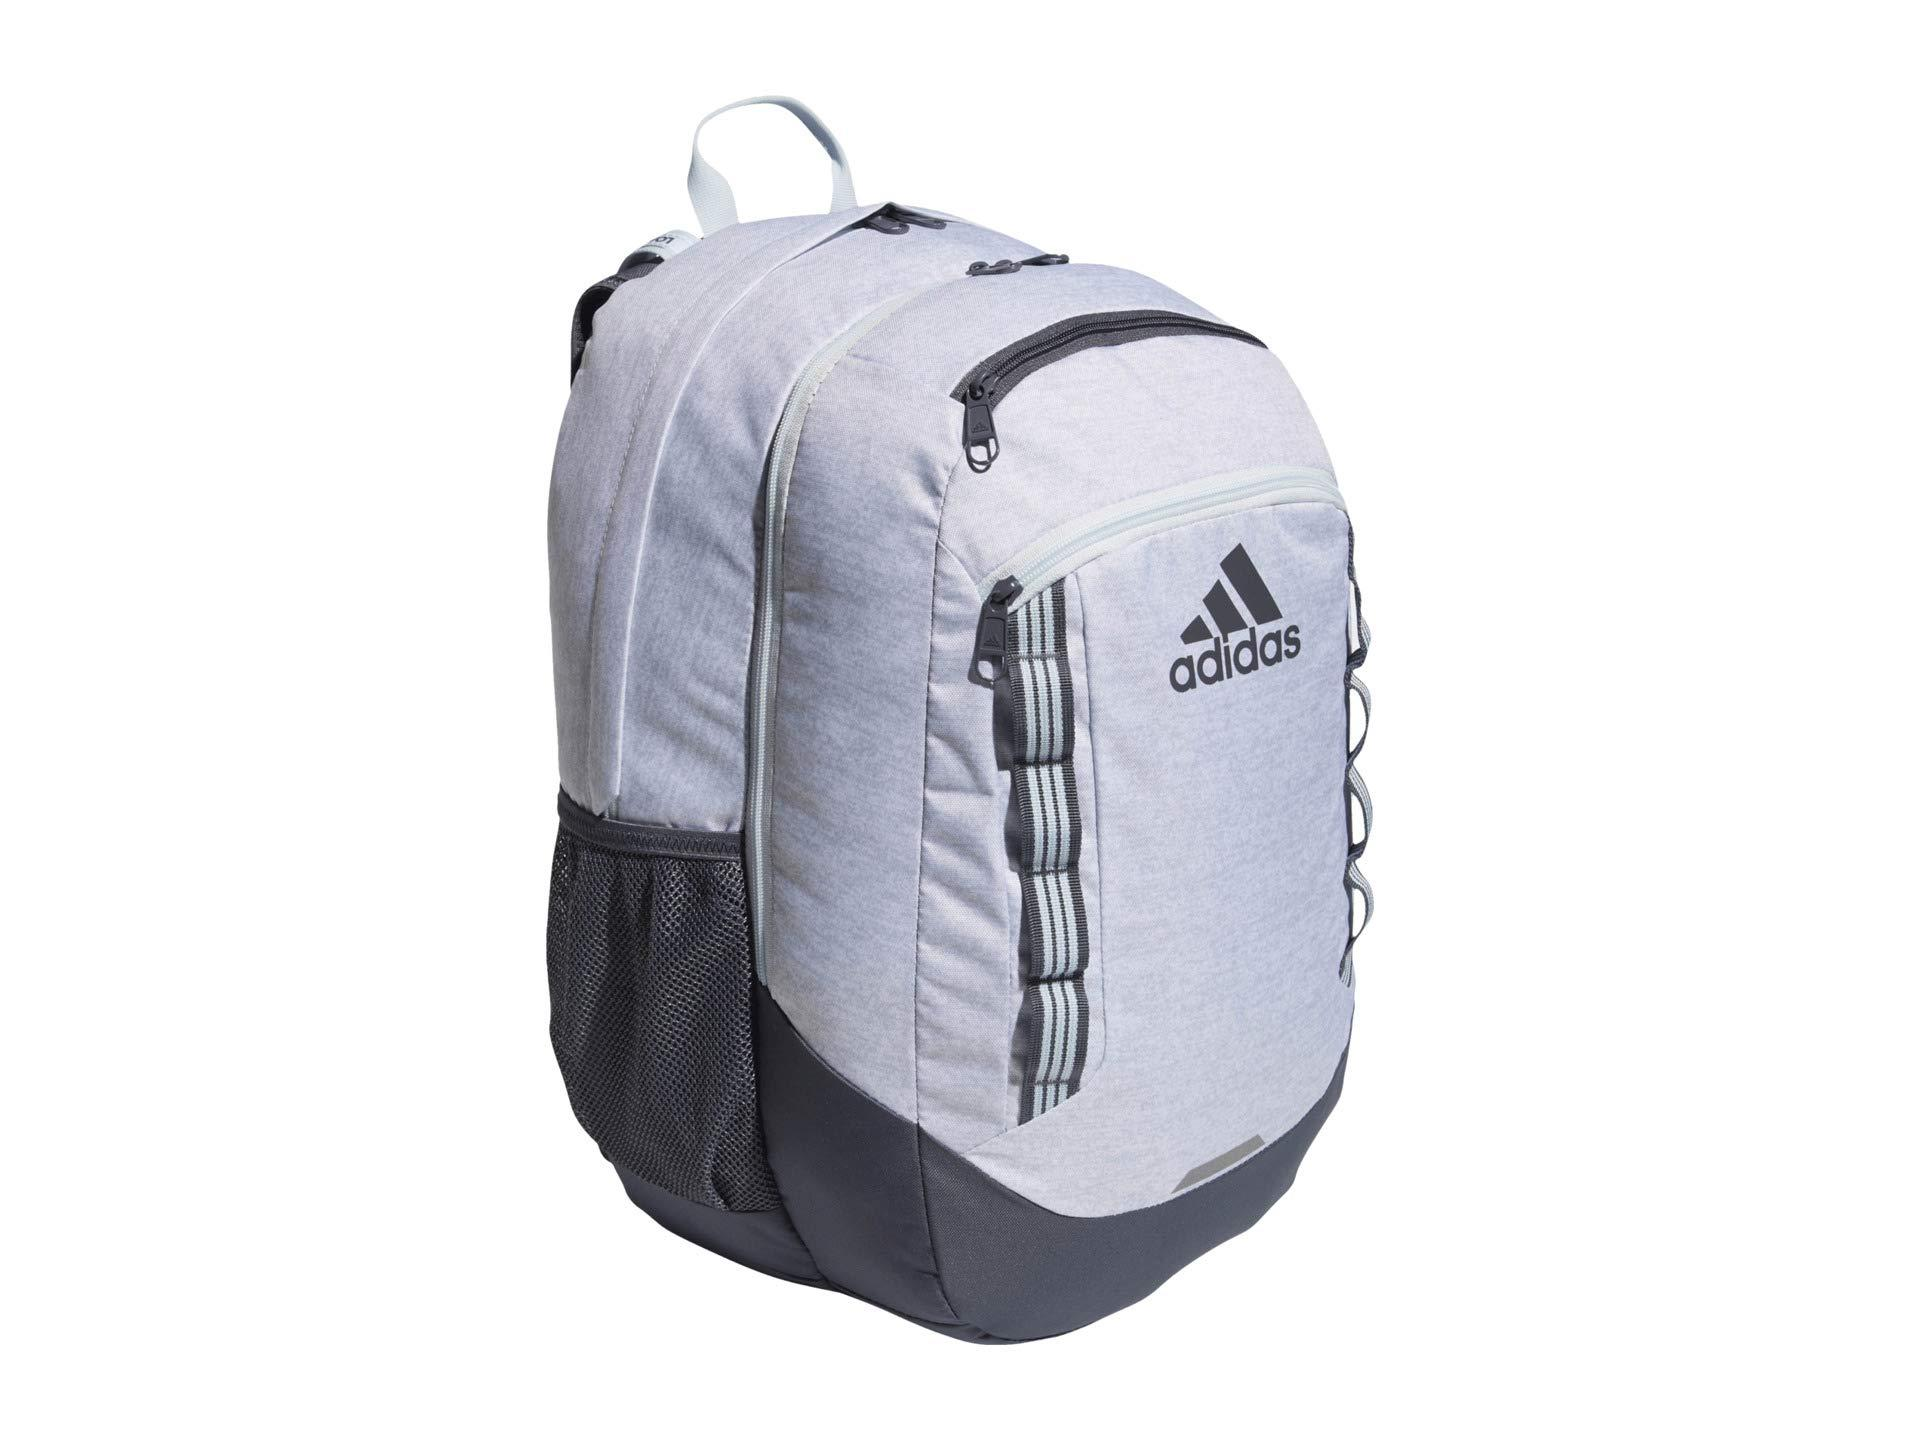 adidas Synthetic Excel V Backpack in White - Lyst